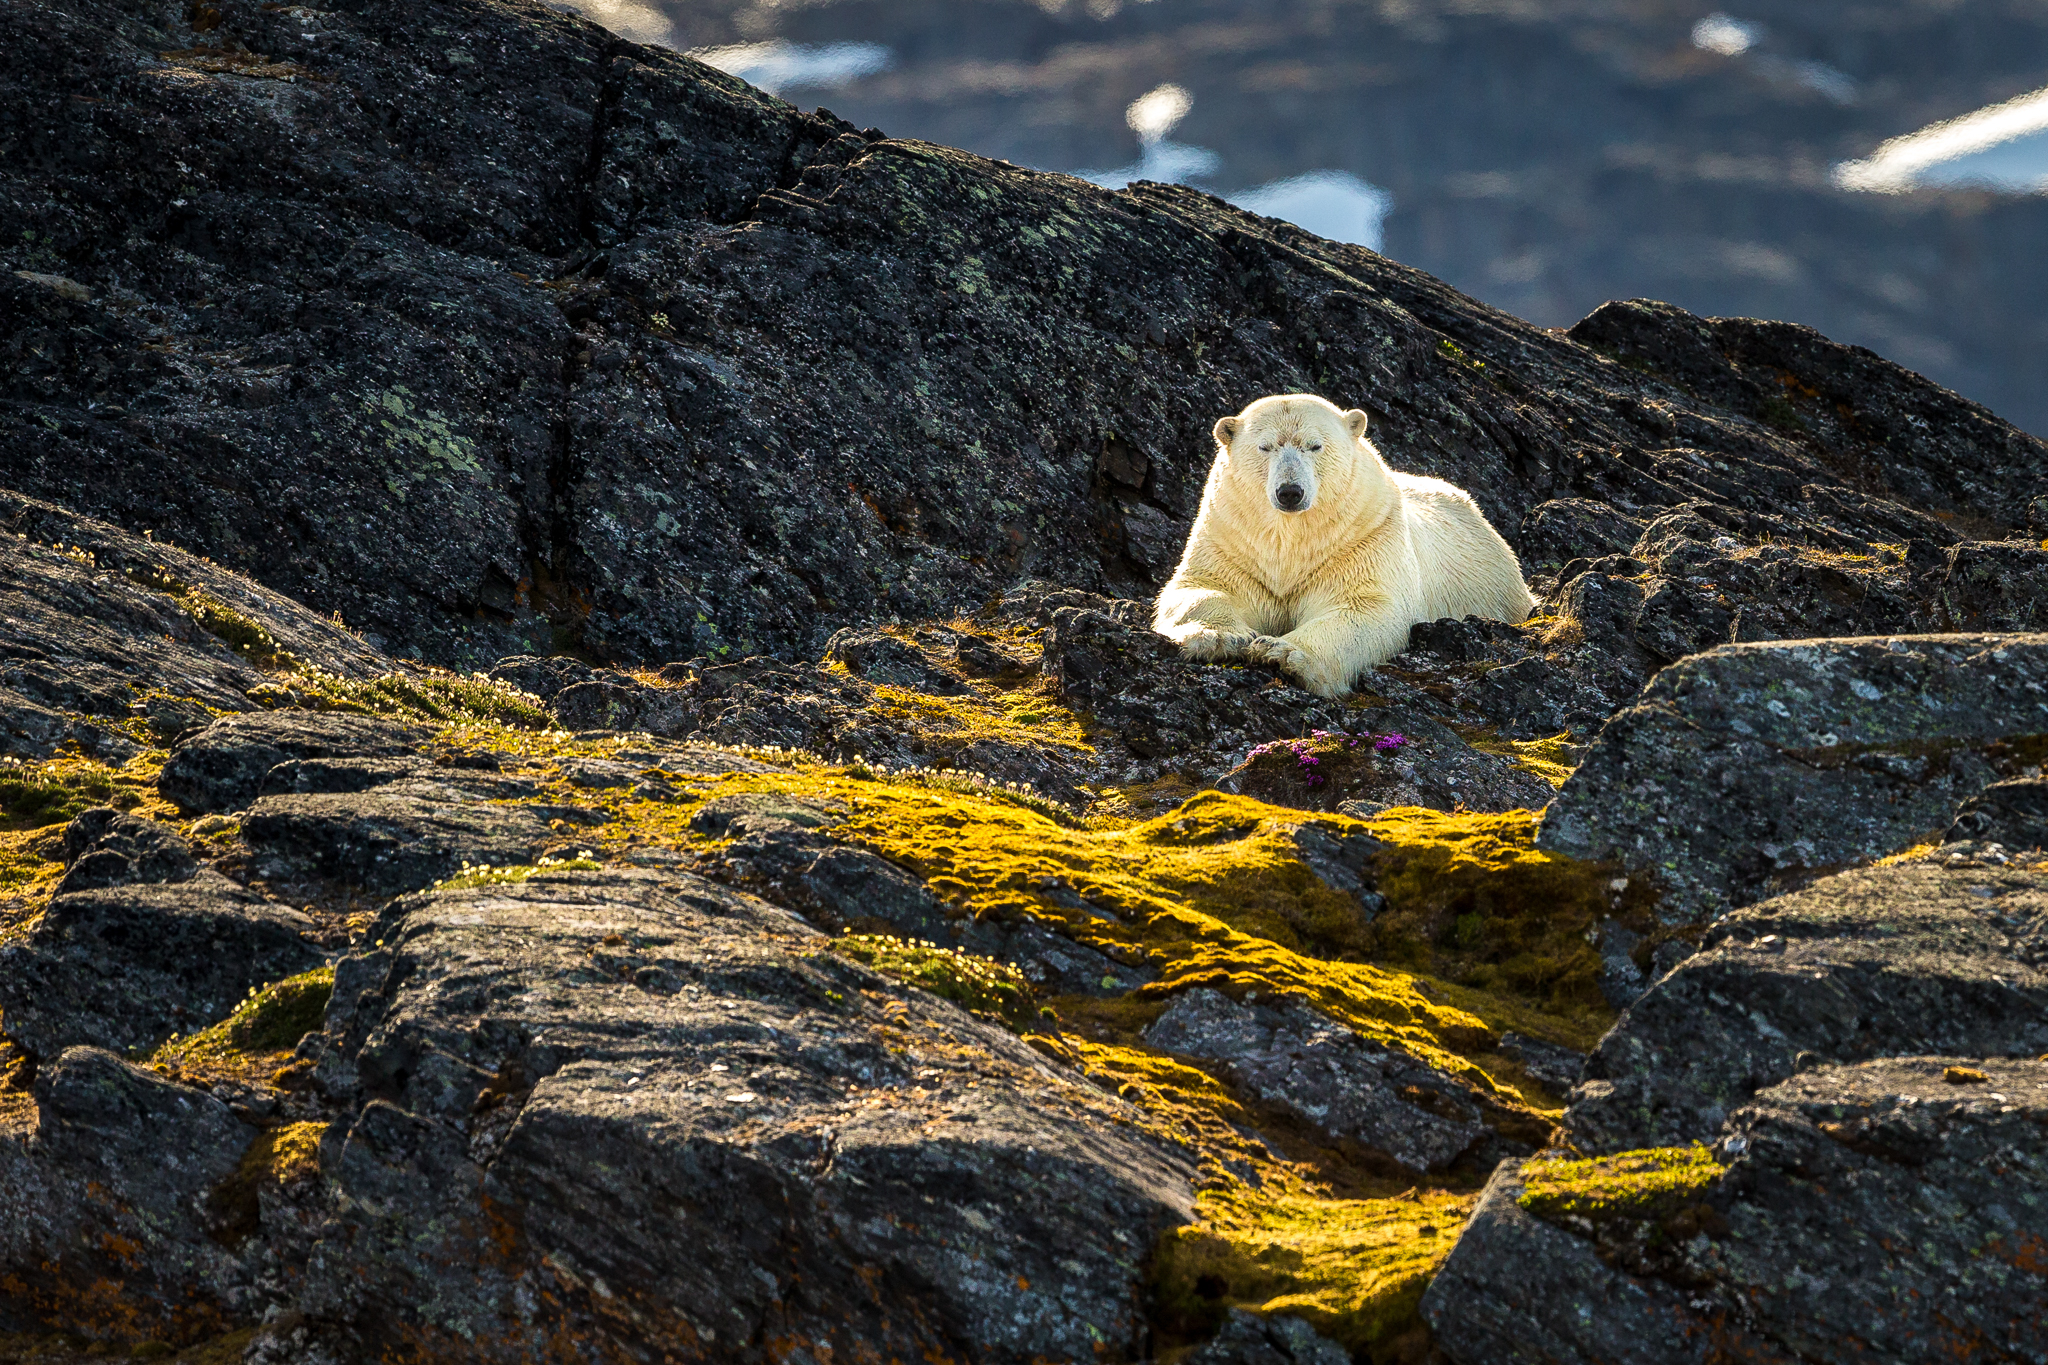 A polar bear rests in Svalbard after swimming from island to island in search of food. With the ice already gone, hunting options are limited. Recently, polar bears have been reported to feed on little auk eggs. Photograph by Marcus Westberg